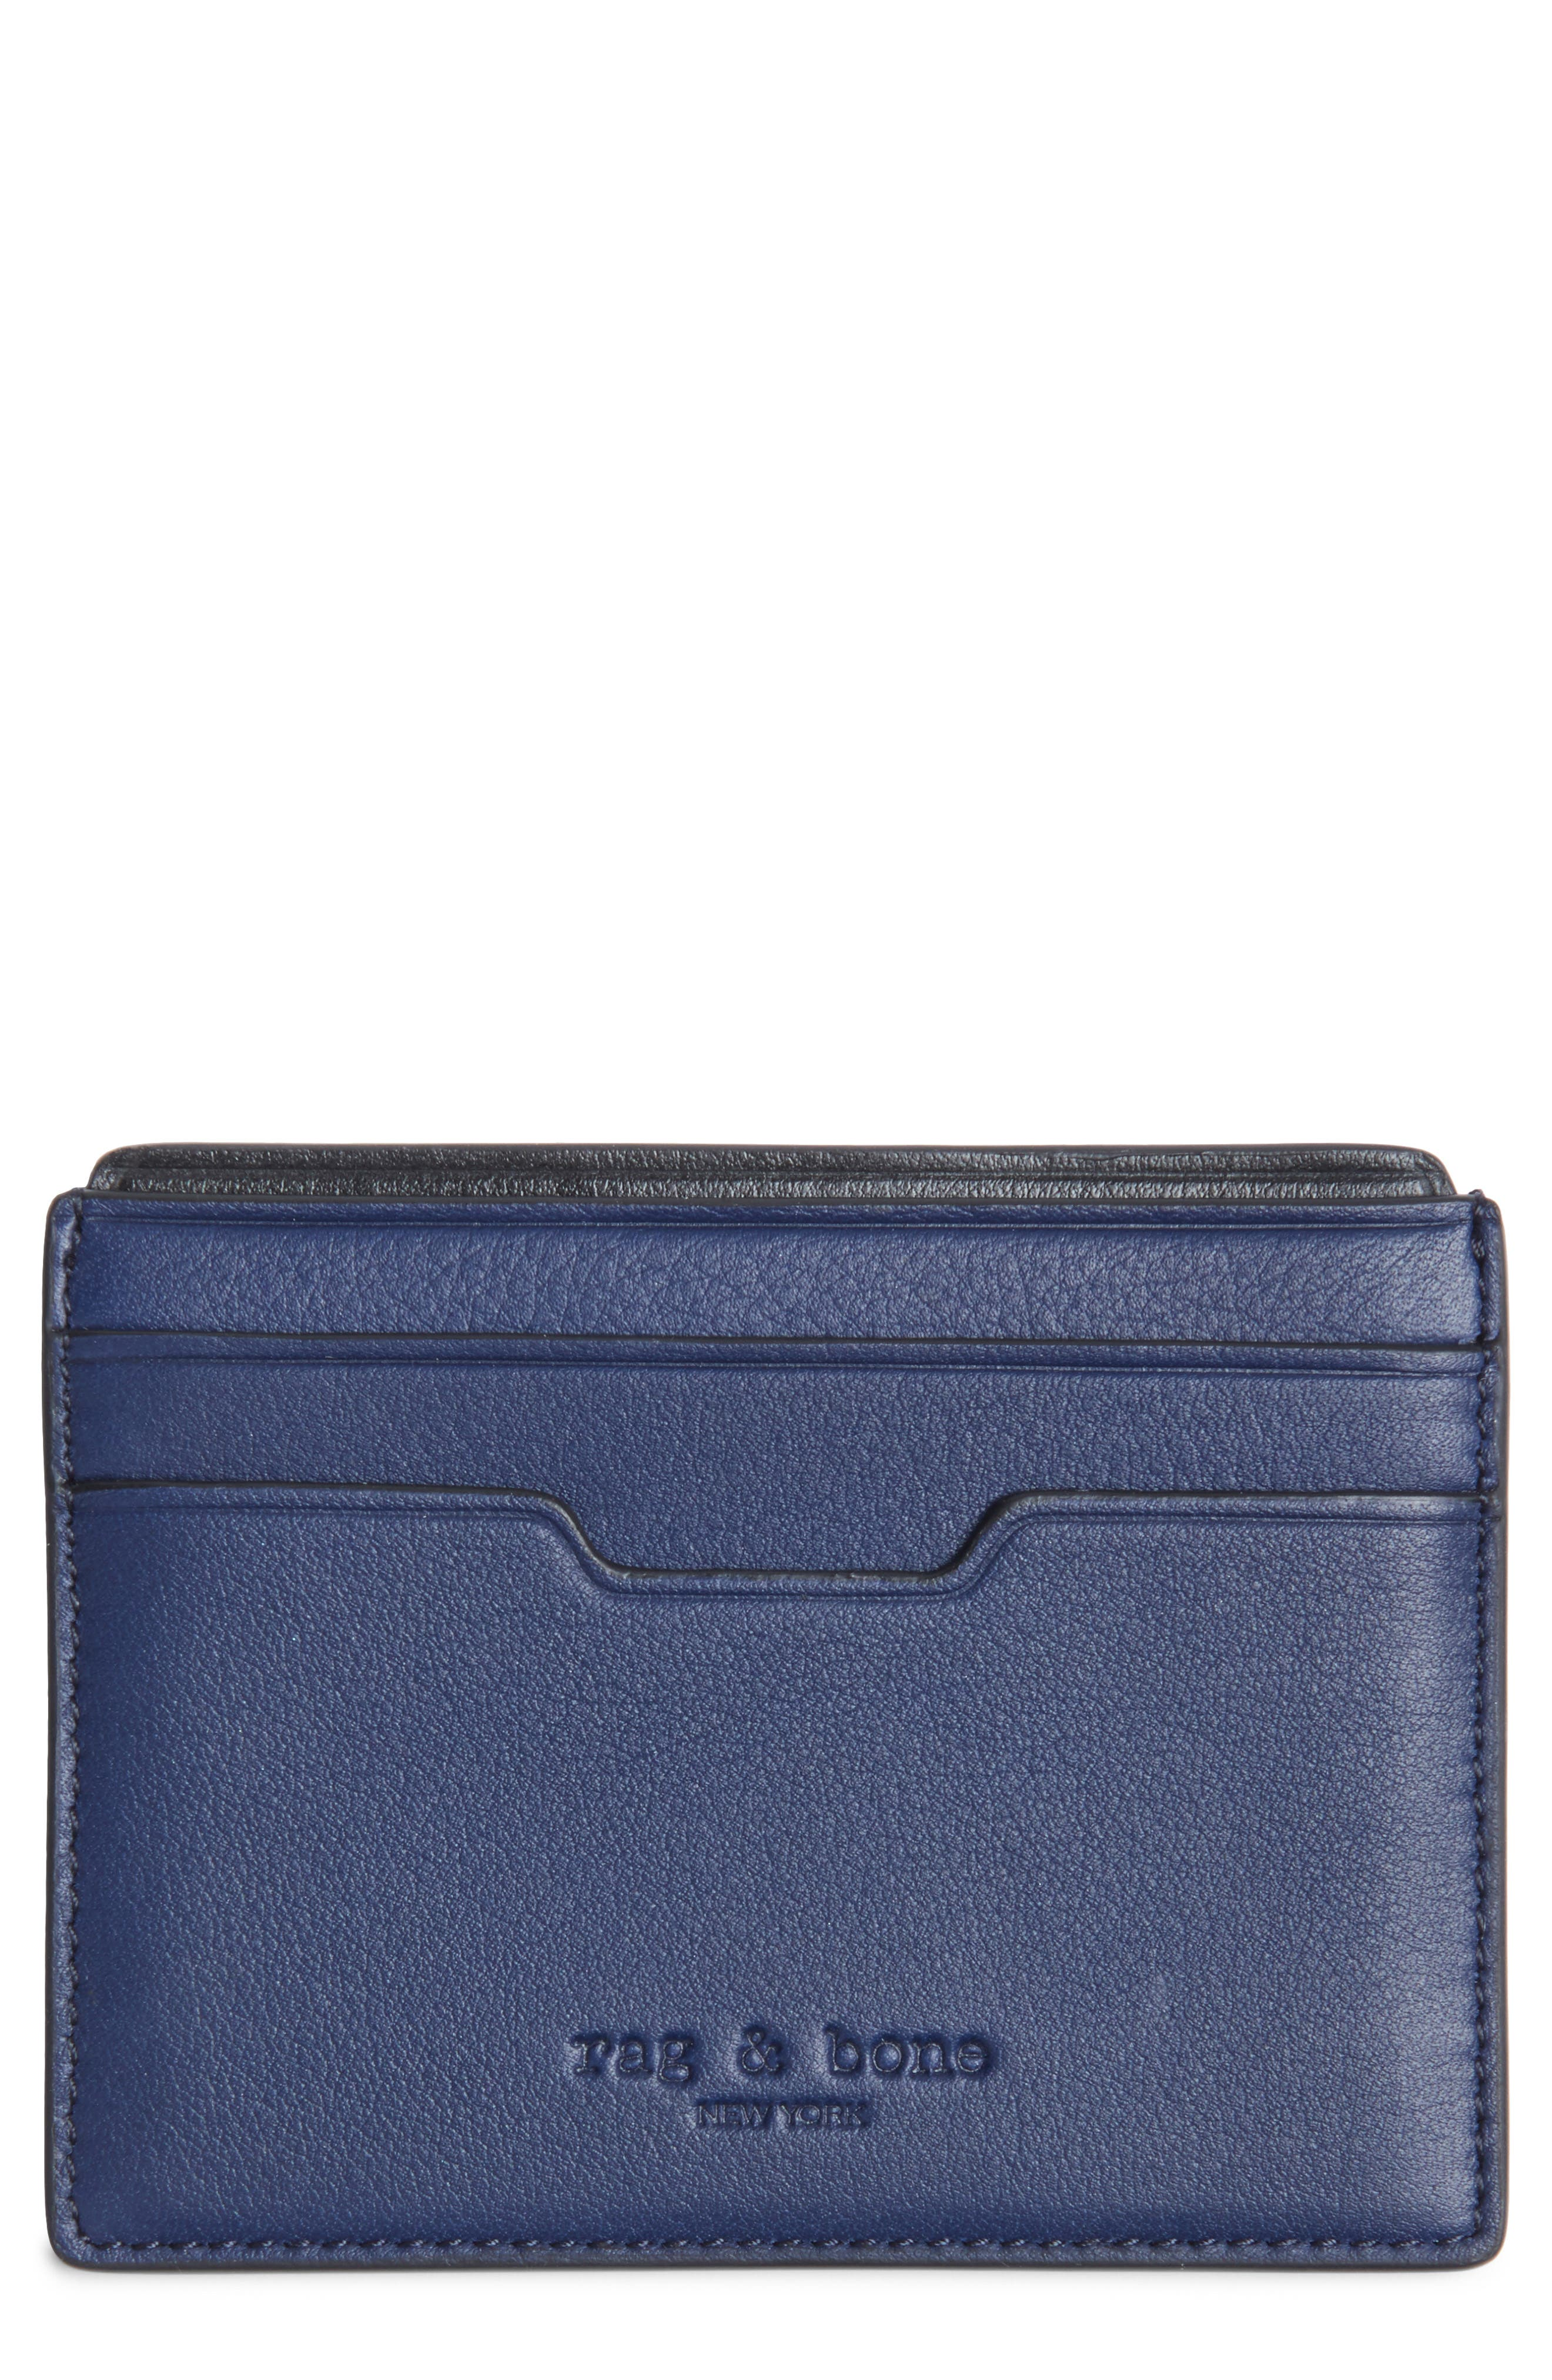 Leather Card Case,                         Main,                         color, Navy